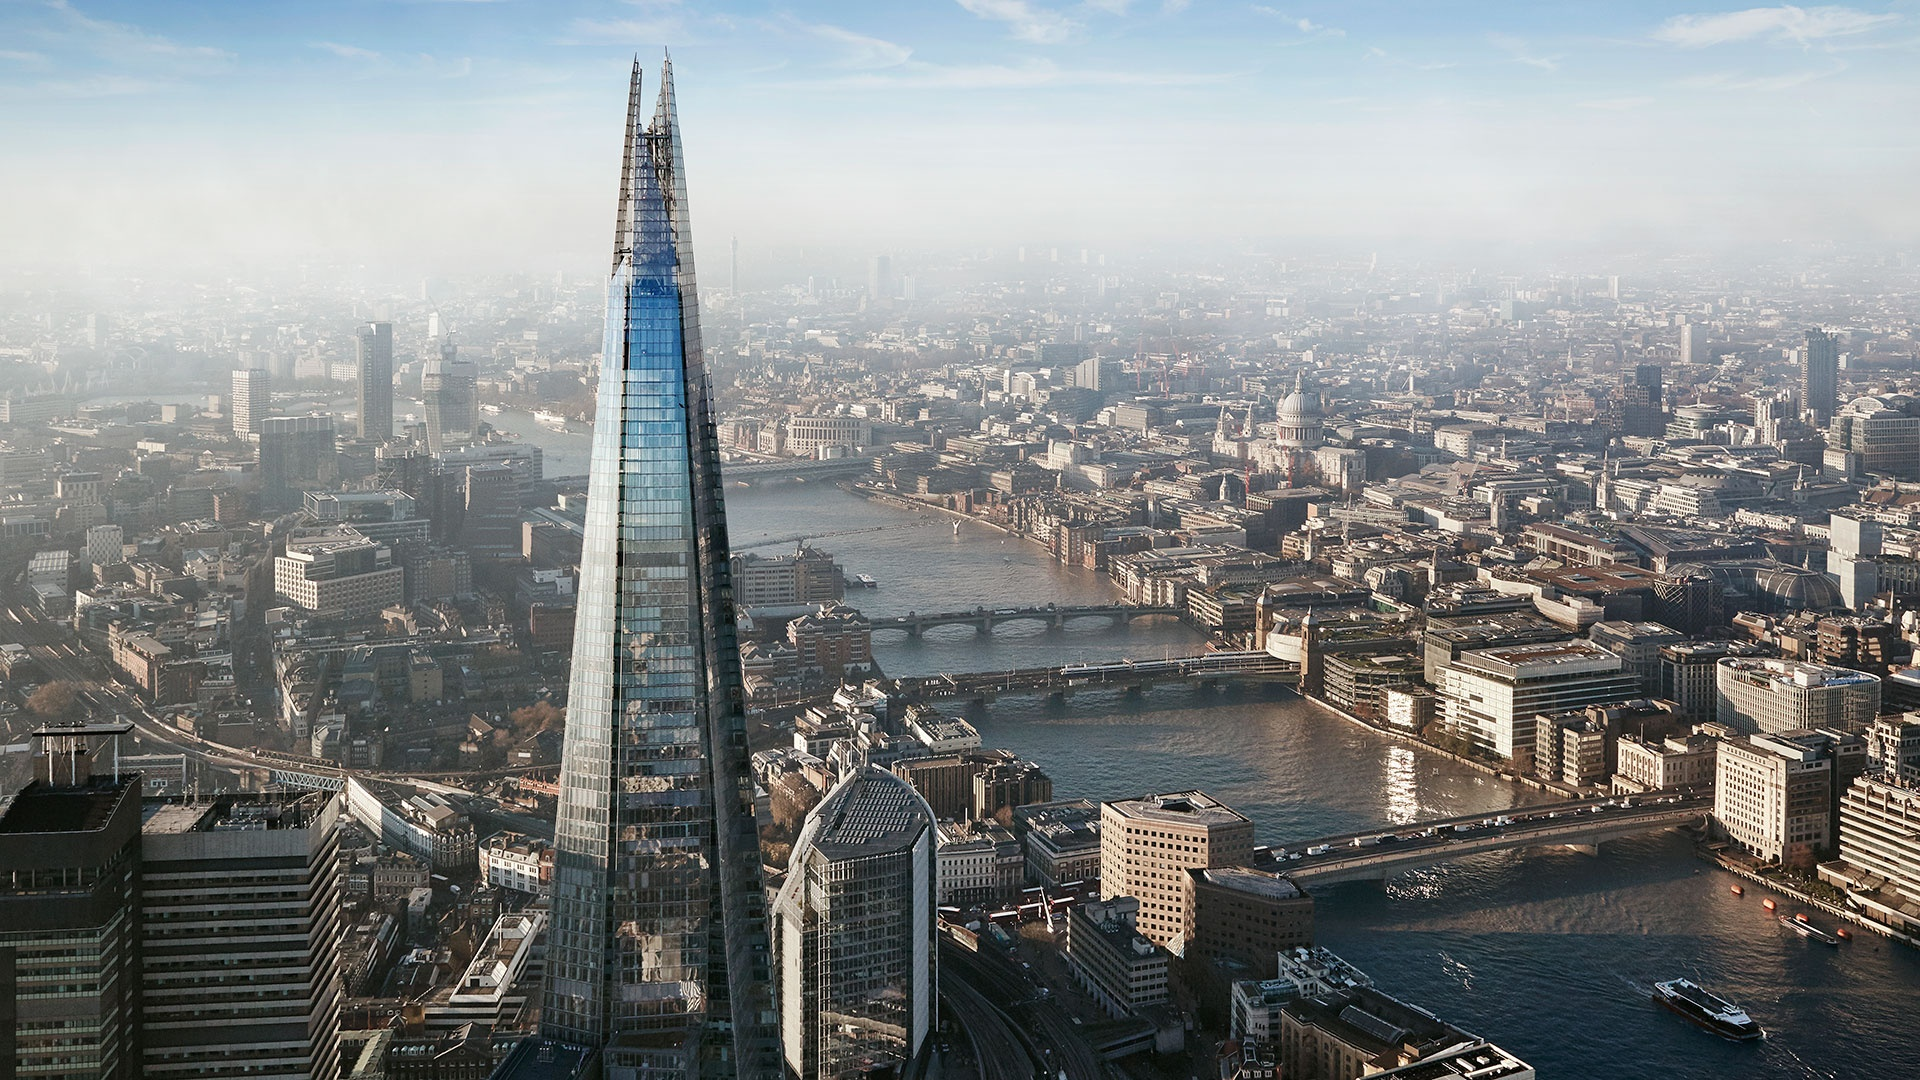 Things to do at the Shard: View from the top